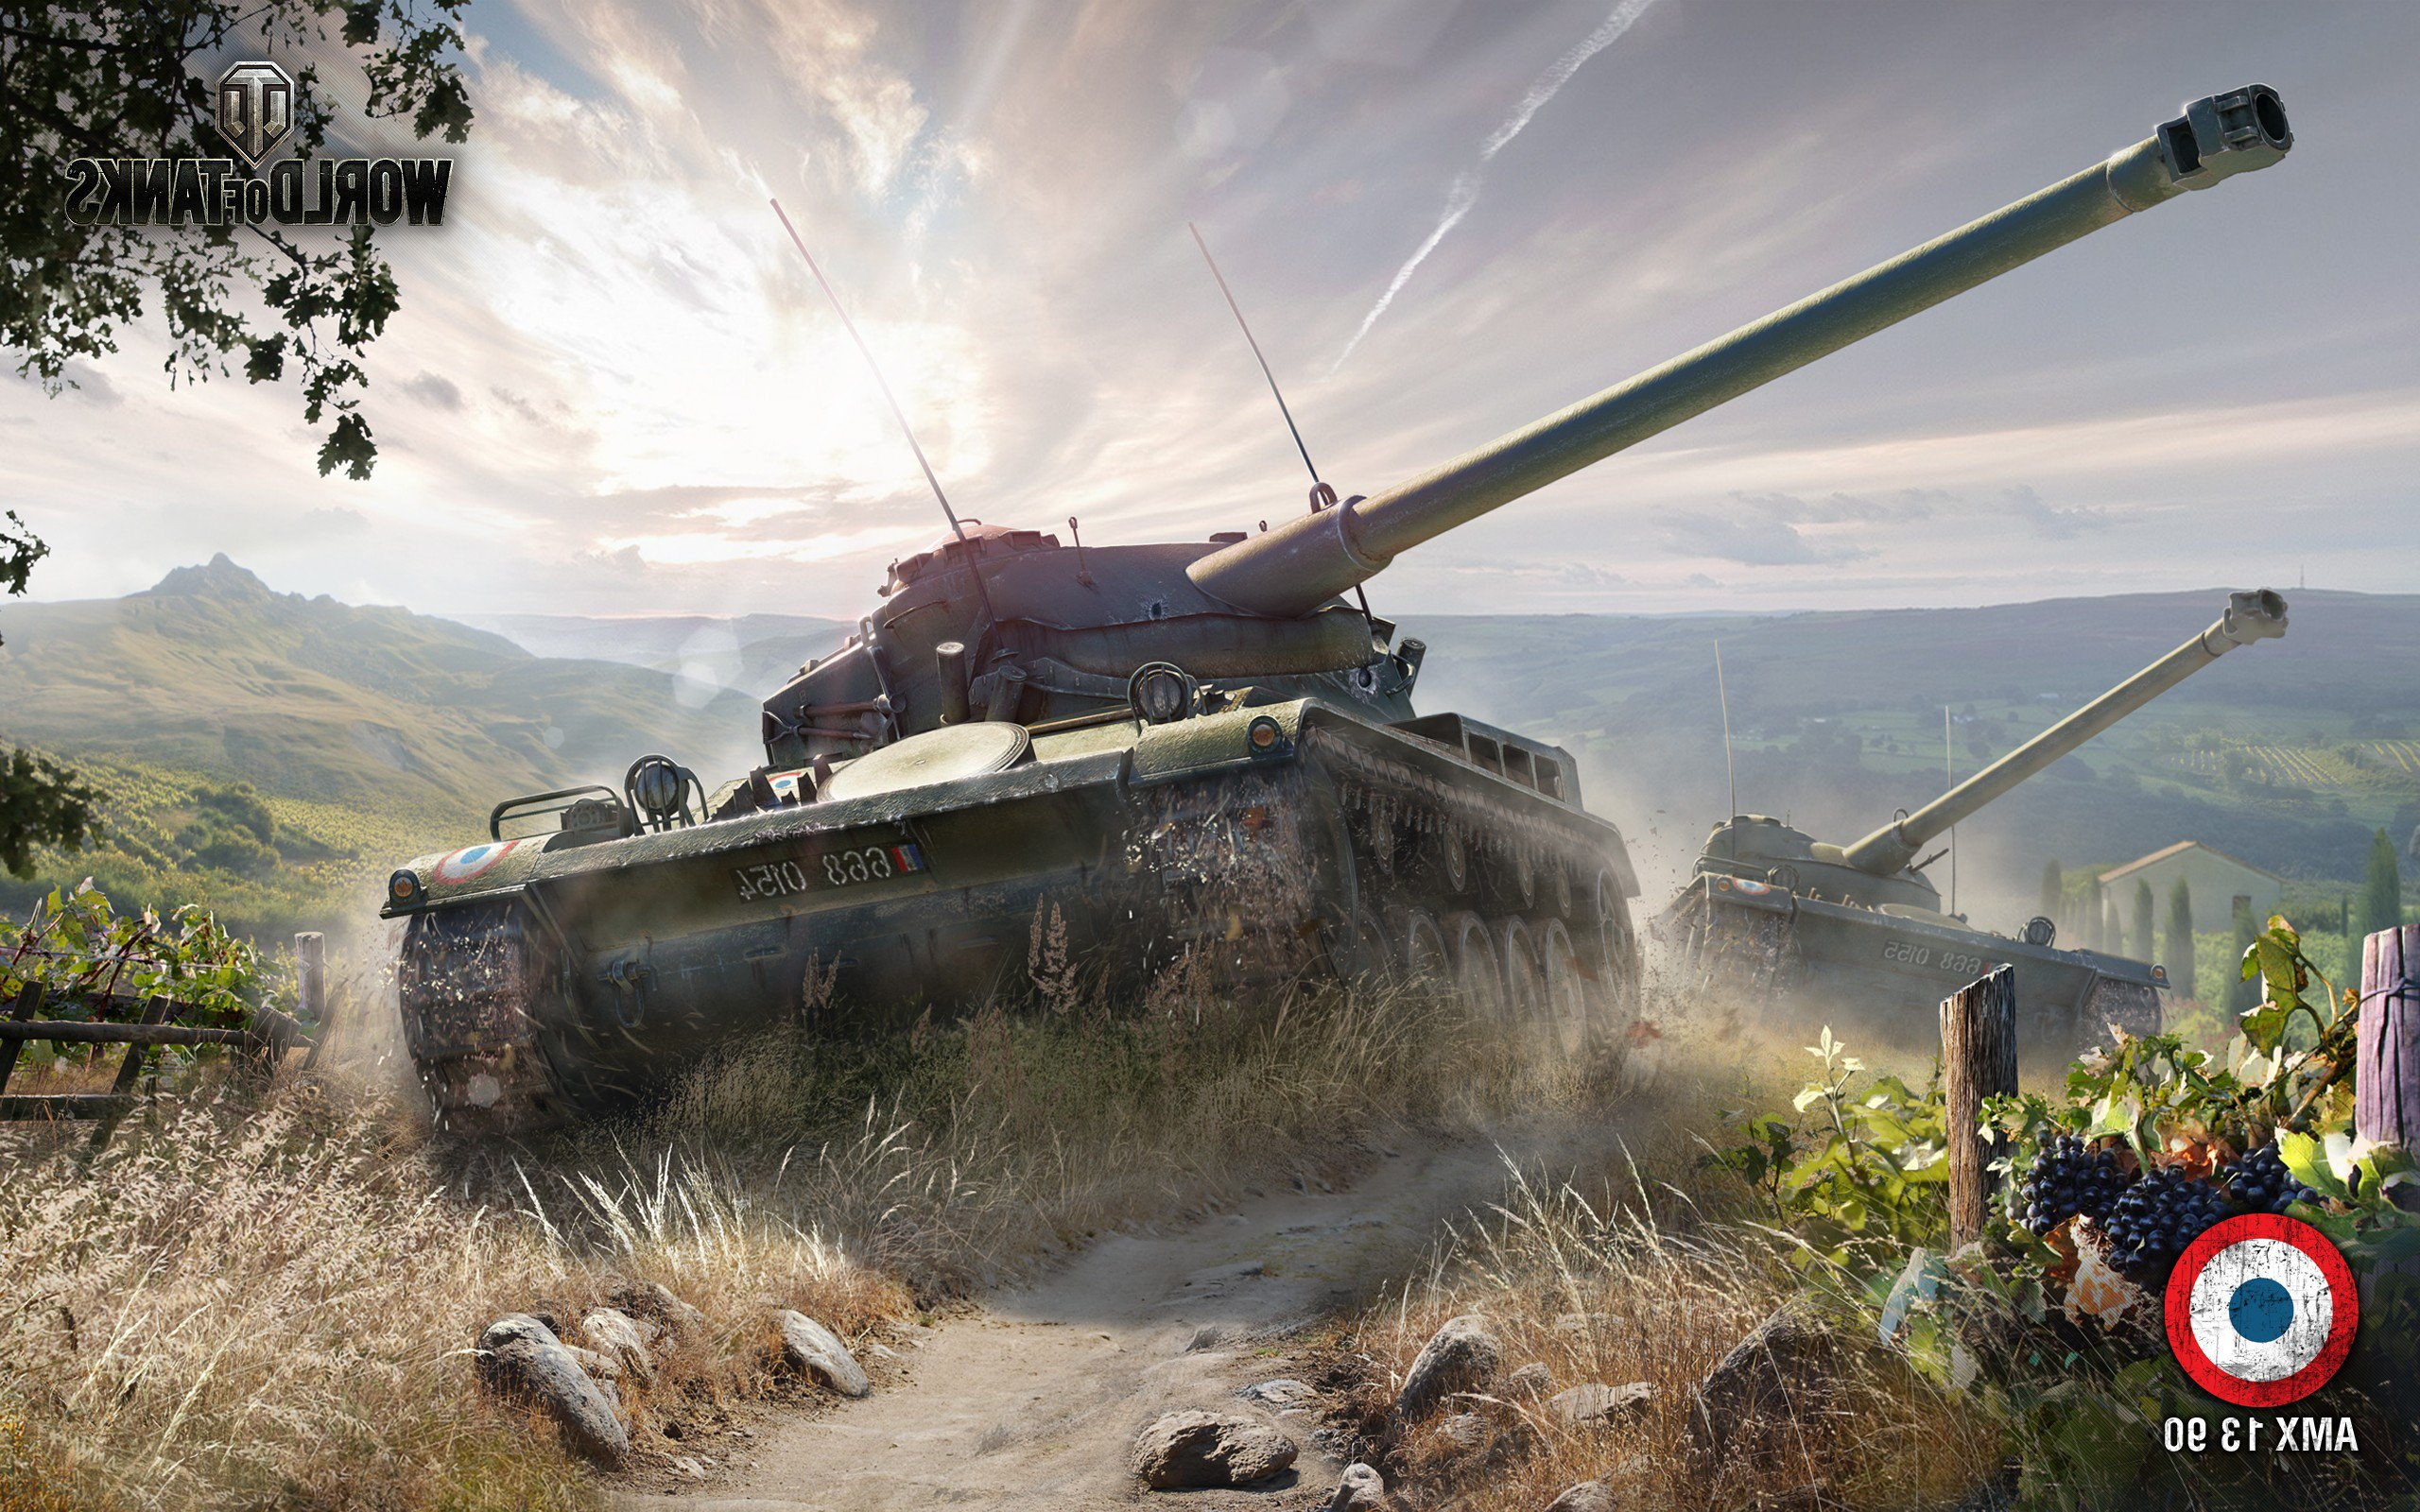 download amx world of tanks hd 4k wallpapers in 2048x1152